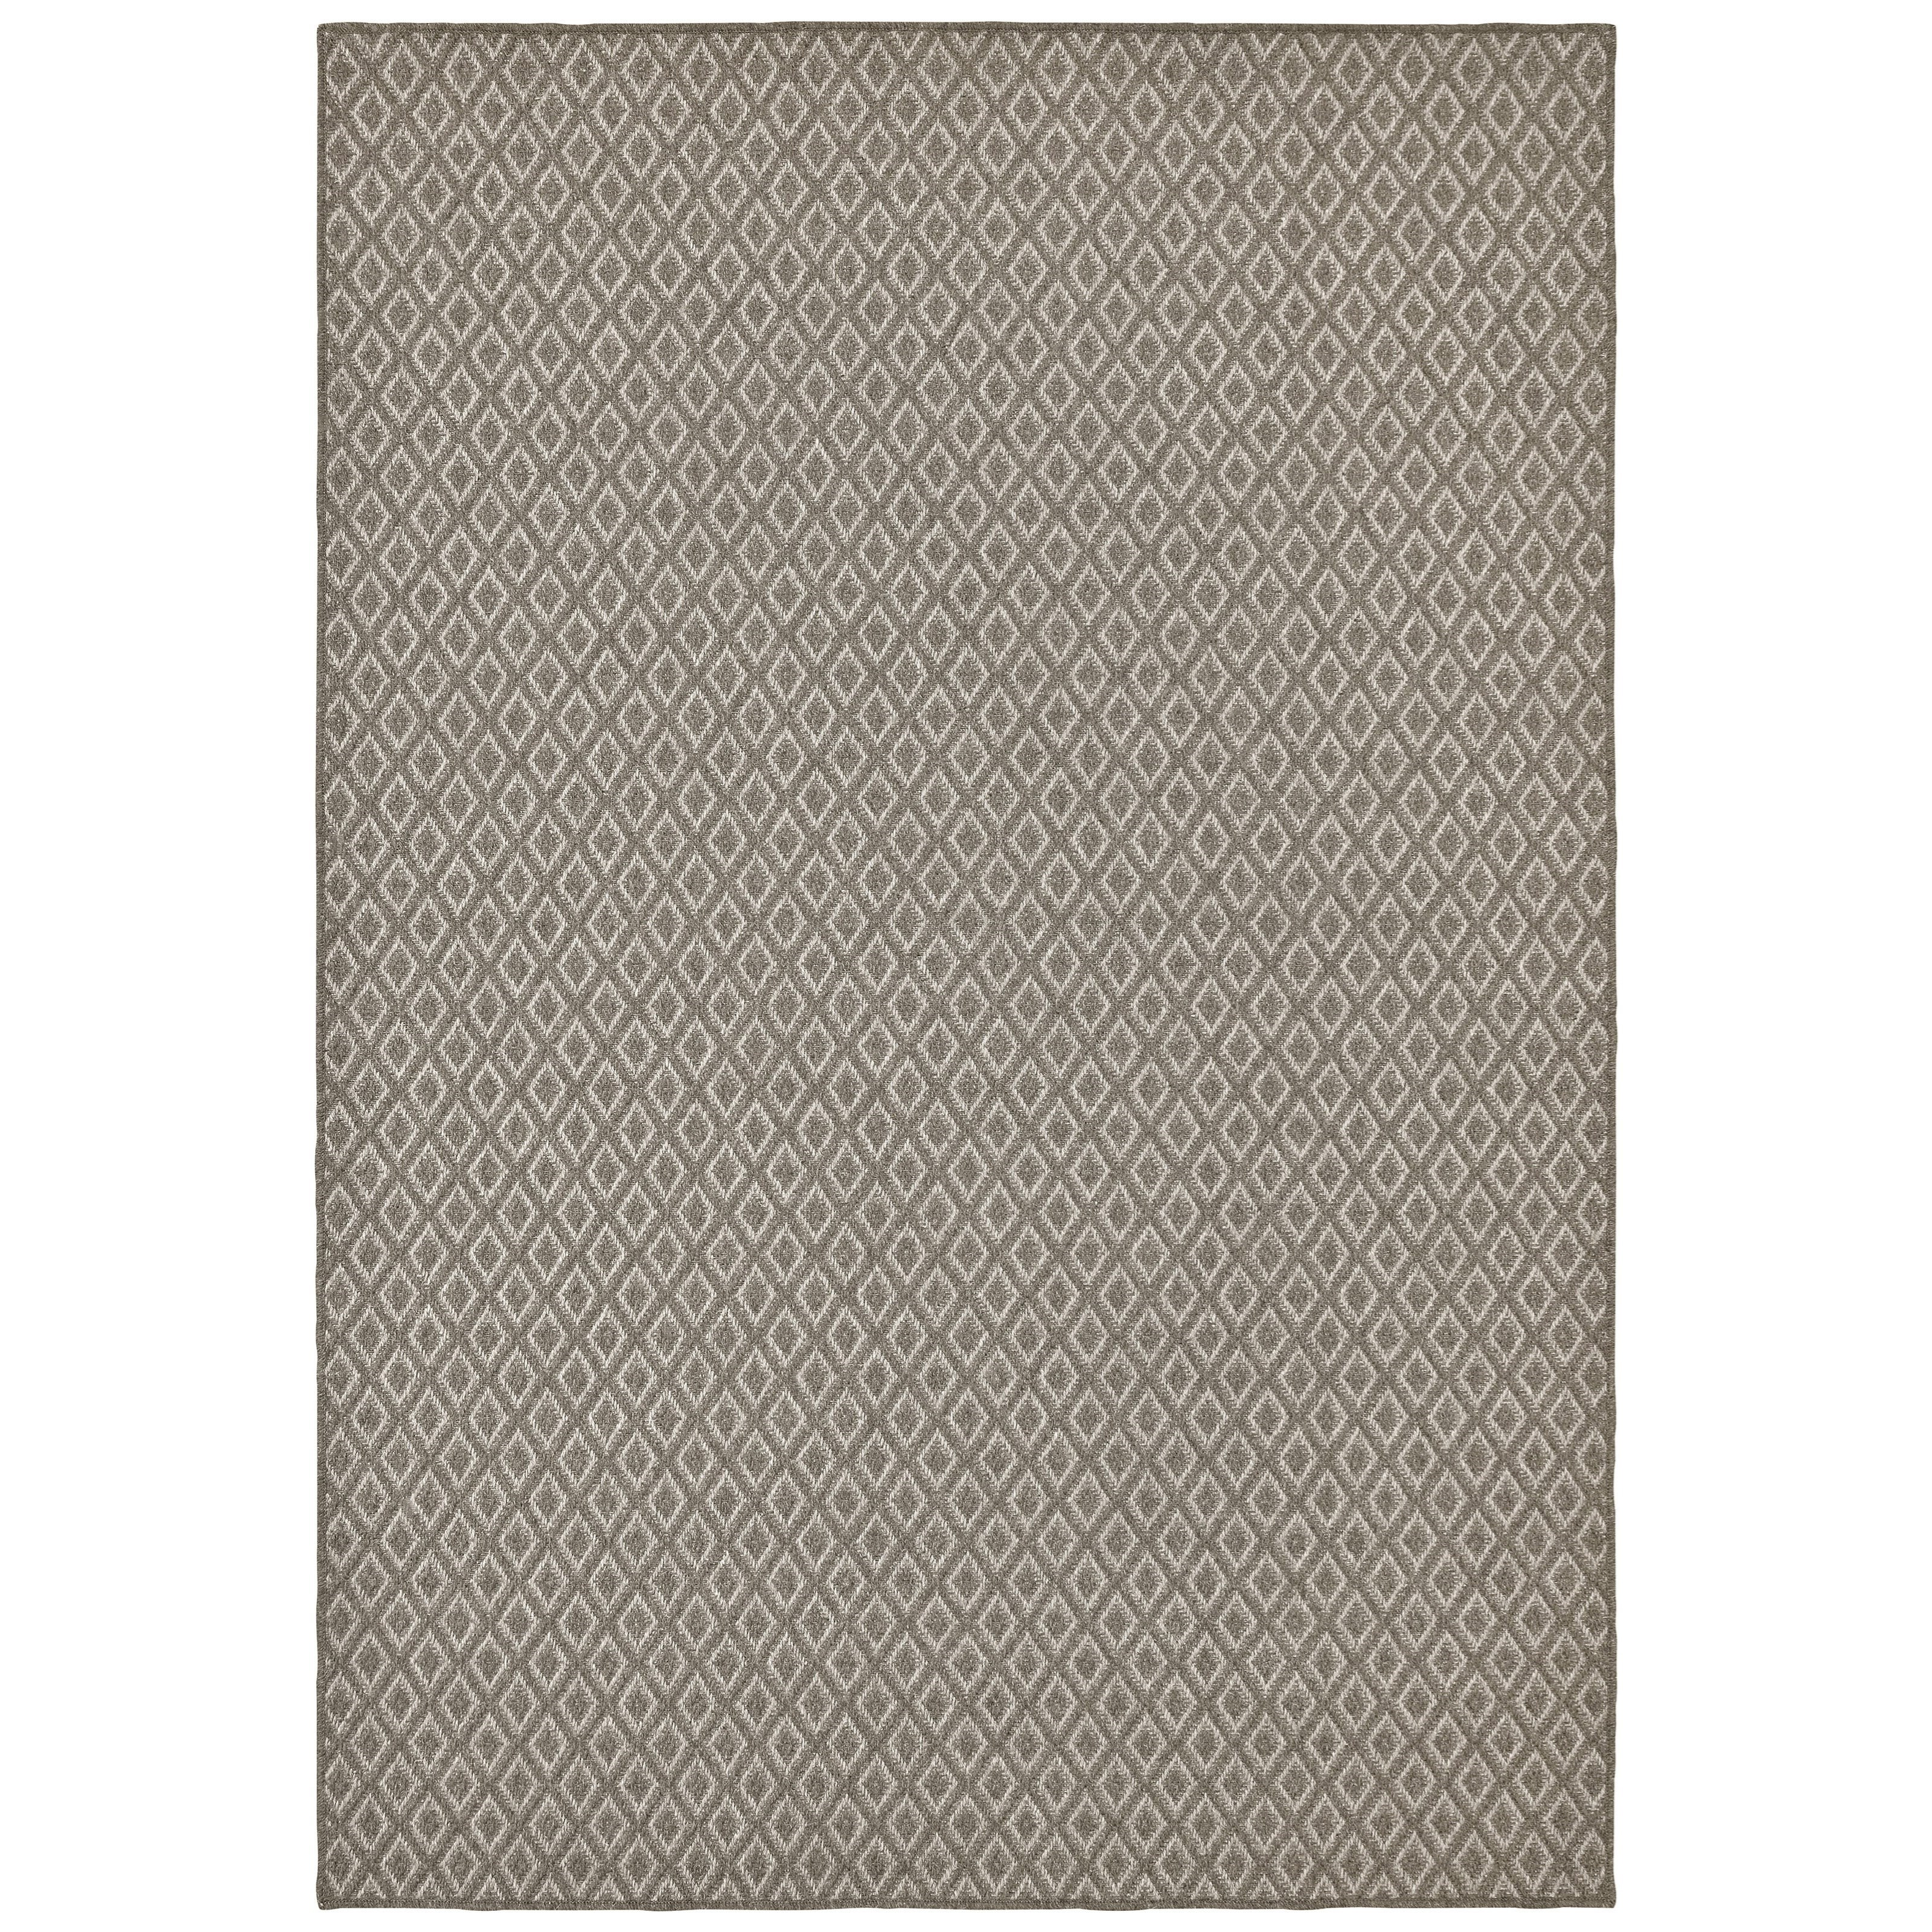 "Boucle 3'10"" X  5' 5"" Rectangle Rug by Oriental Weavers at Darvin Furniture"